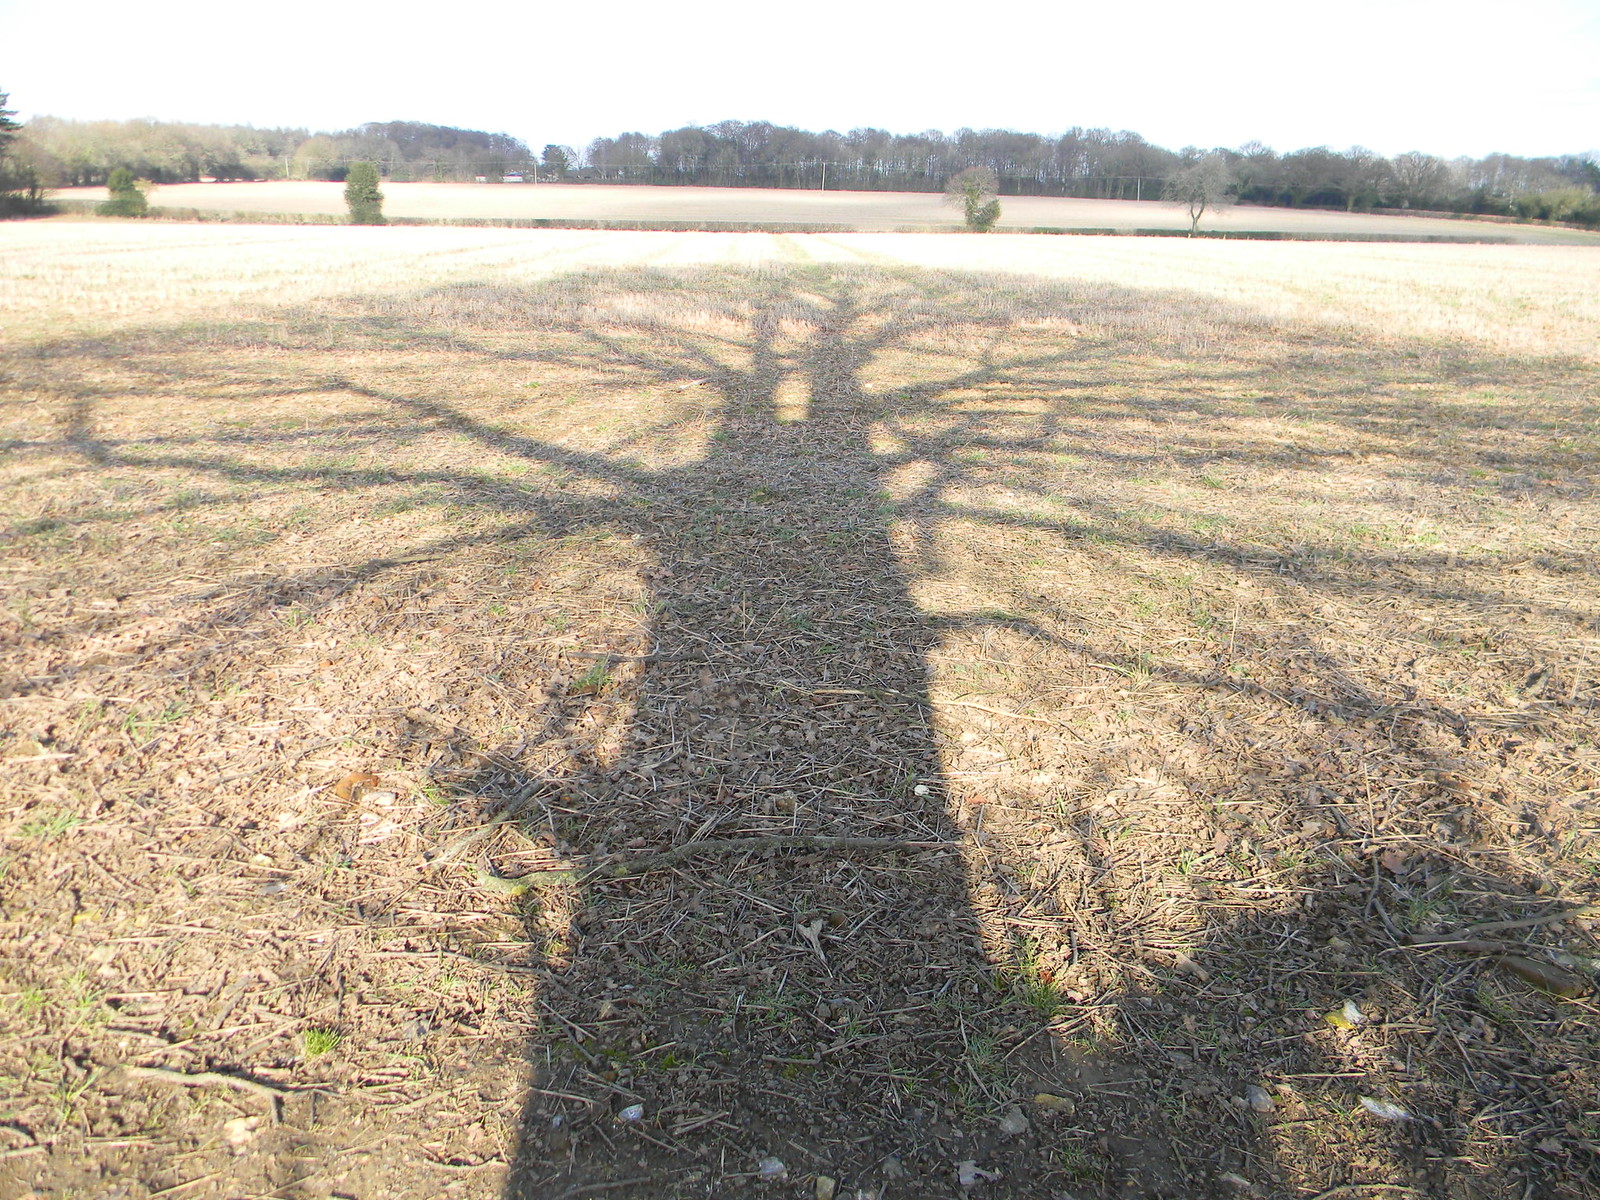 Tree shadow Chesham to Great Missenden